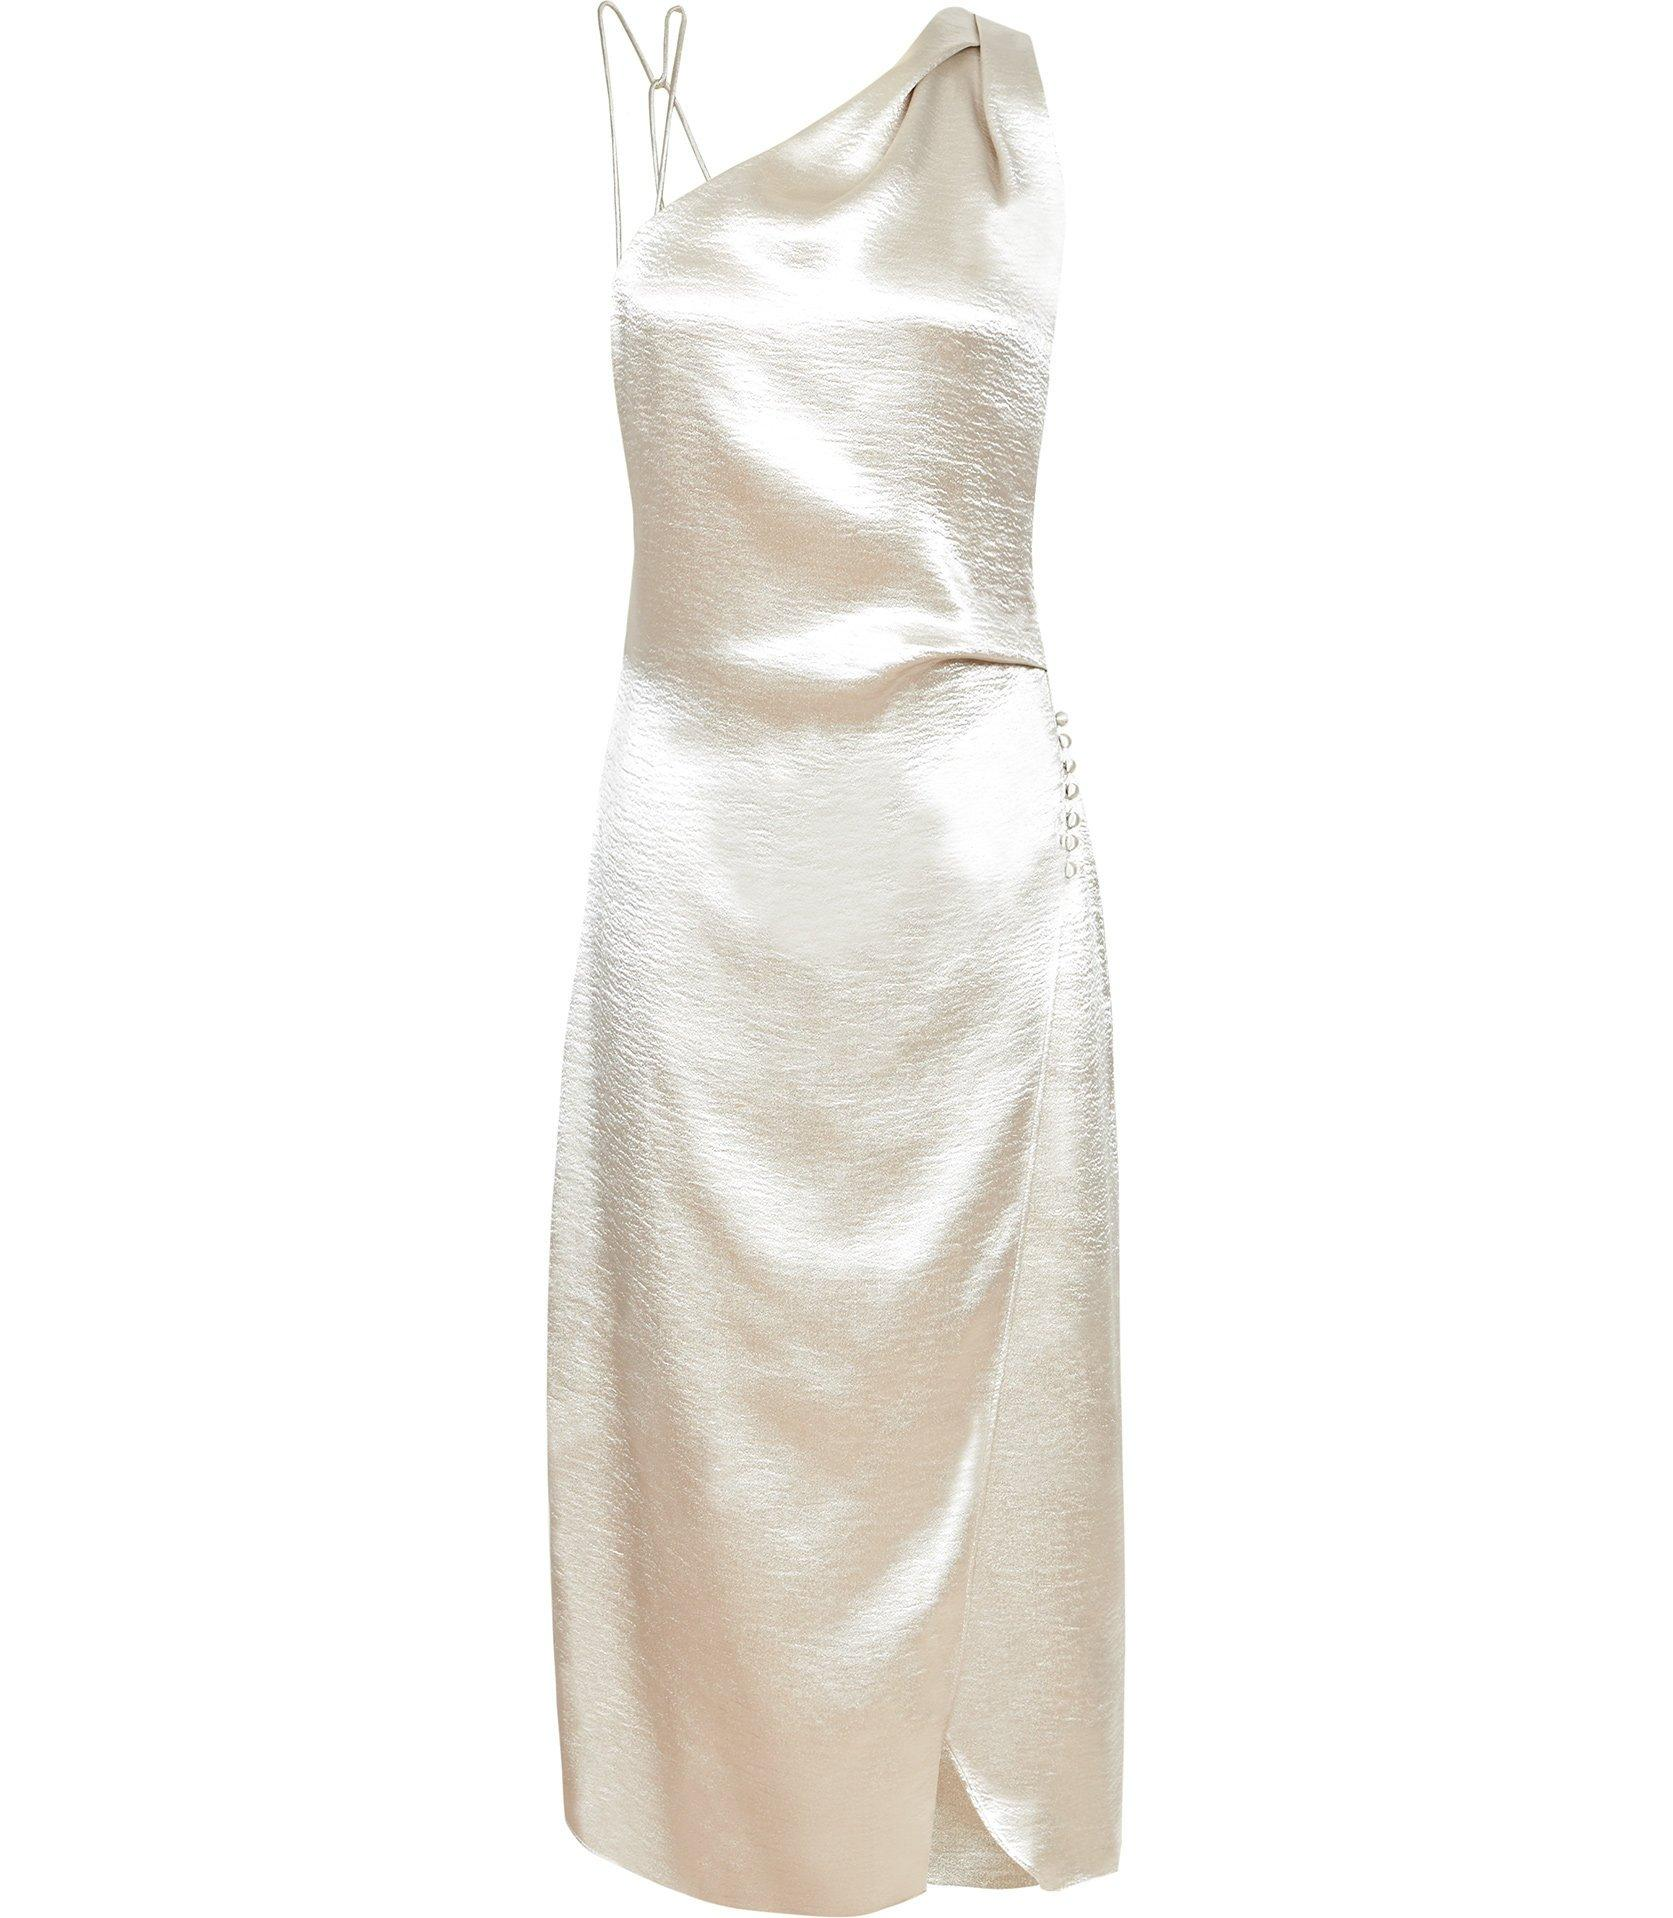 bfb207f37bc Reiss Positano - Strappy Cocktail Dress in Metallic - Save 51% - Lyst